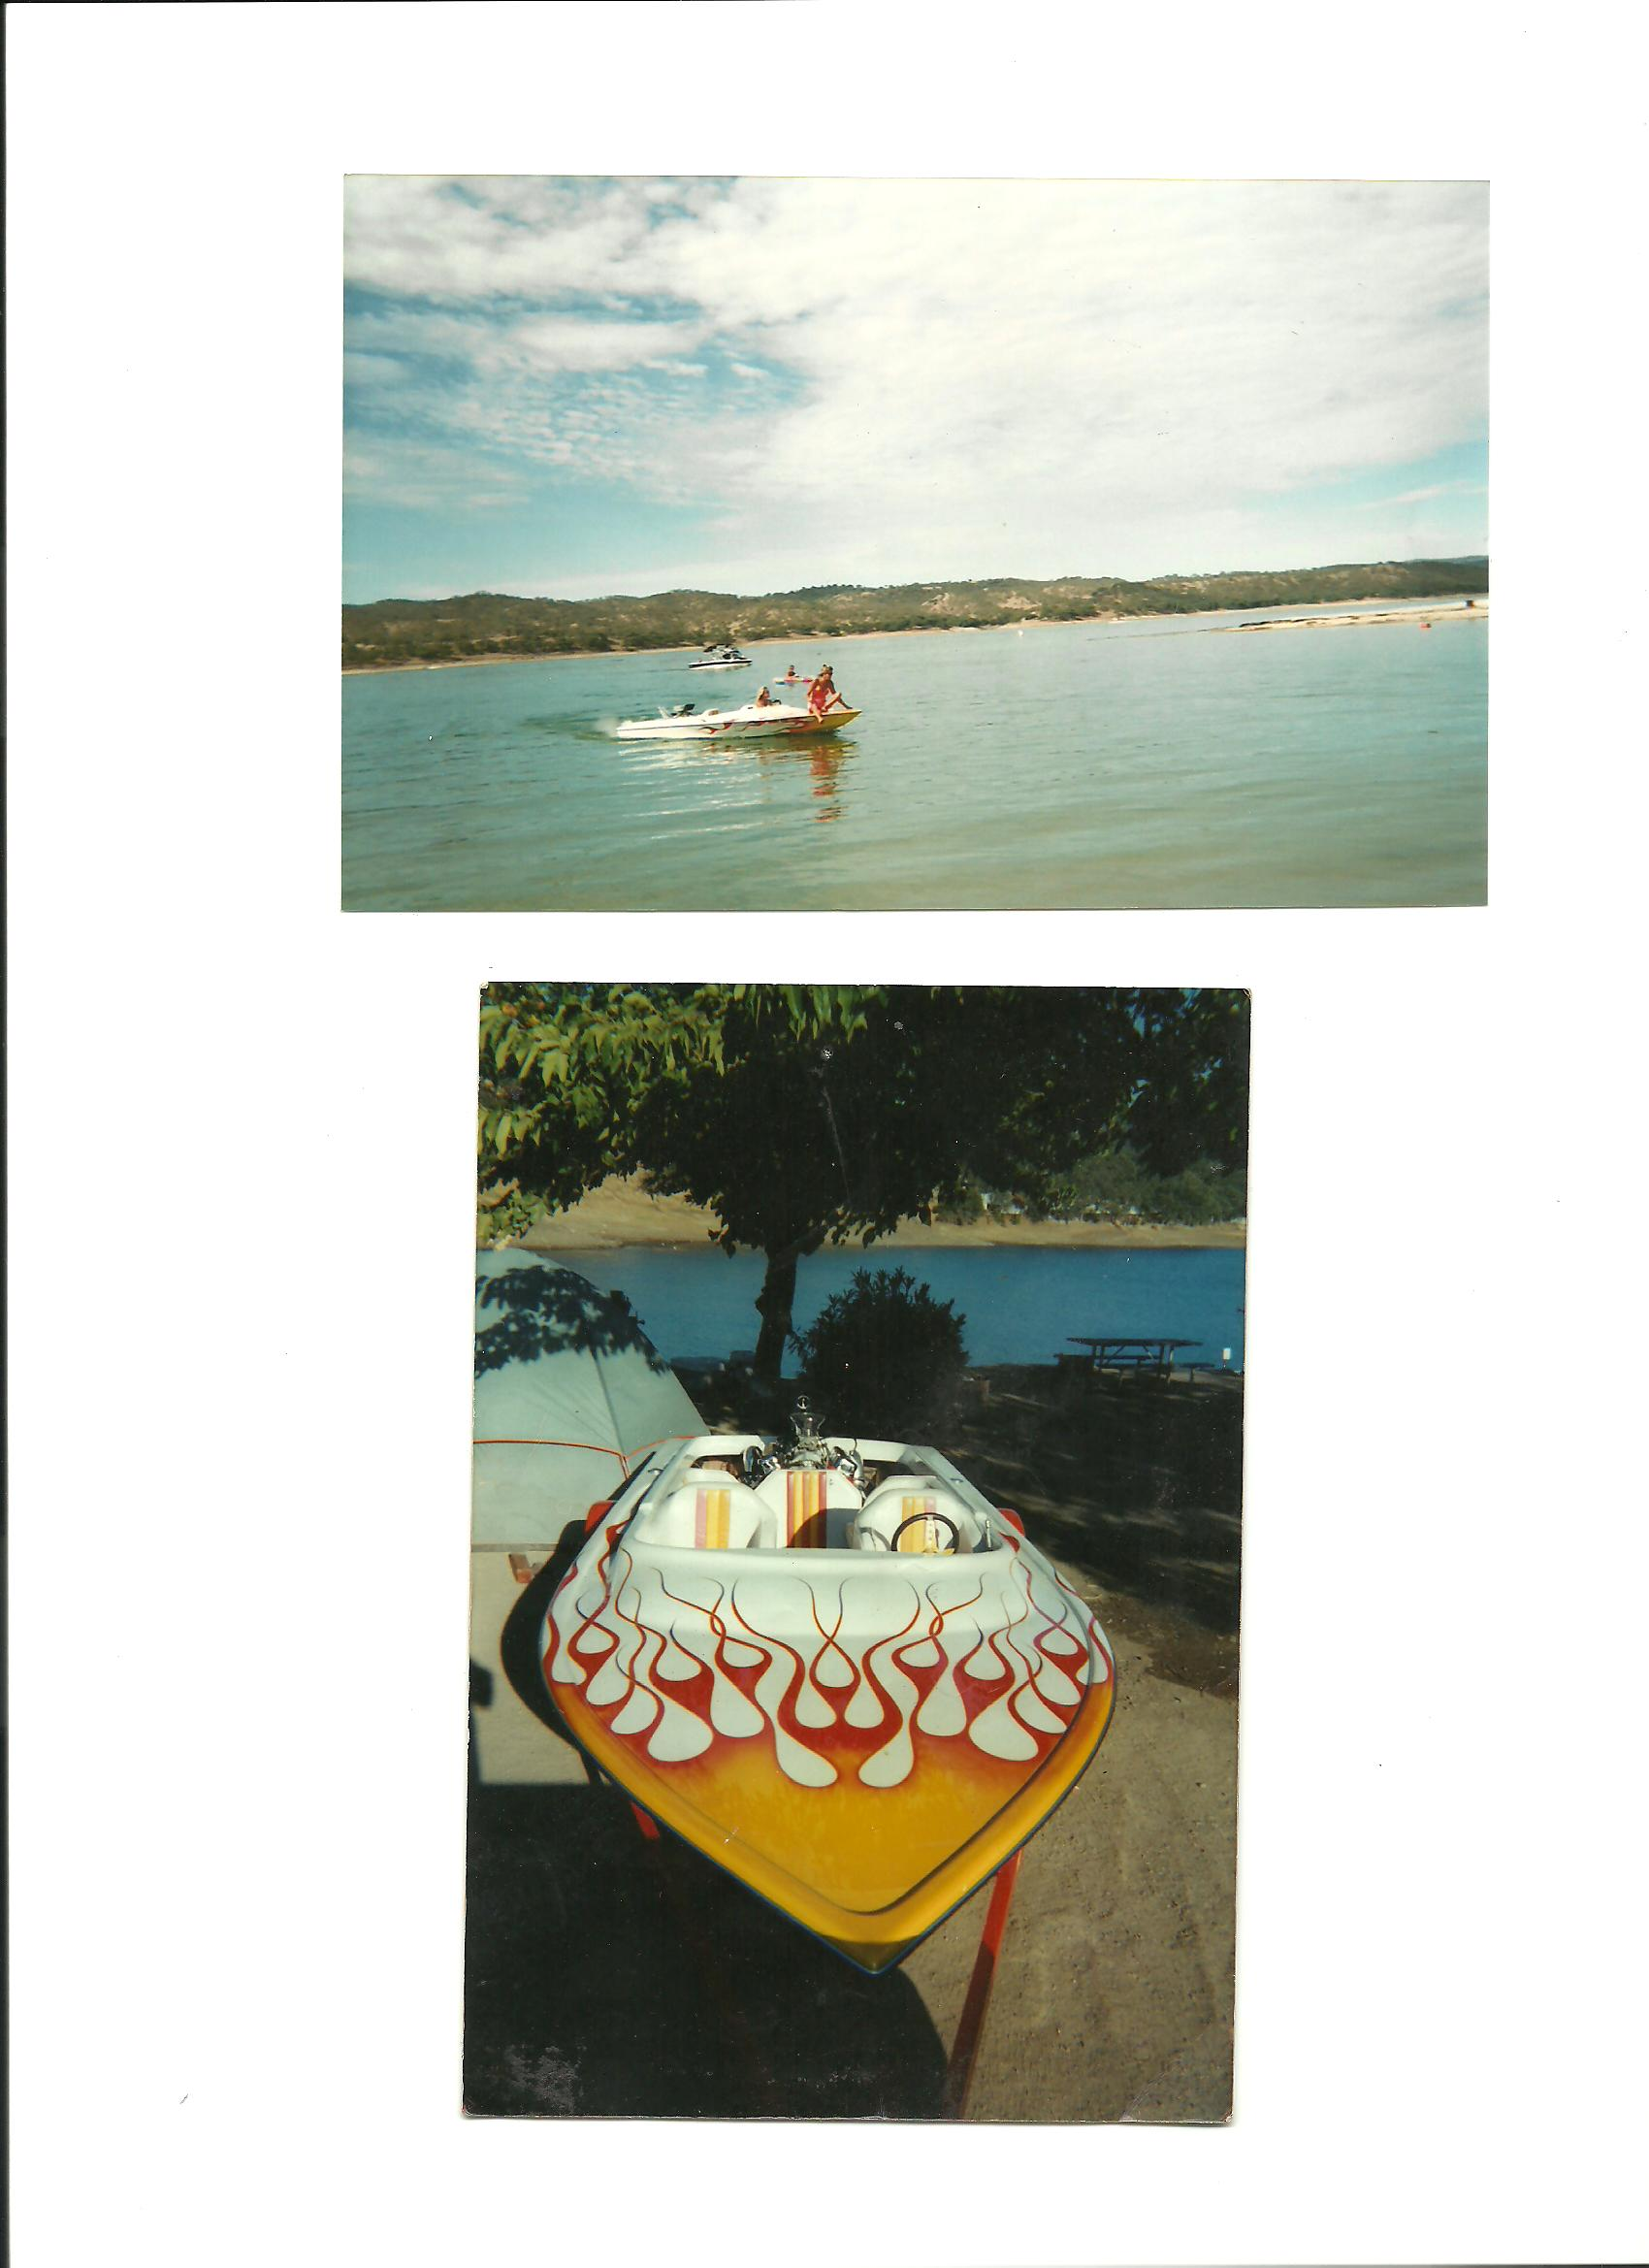 Click image for larger version.  Name:boat picts 2 001.jpg Views:83 Size:239.7 KB ID:173330